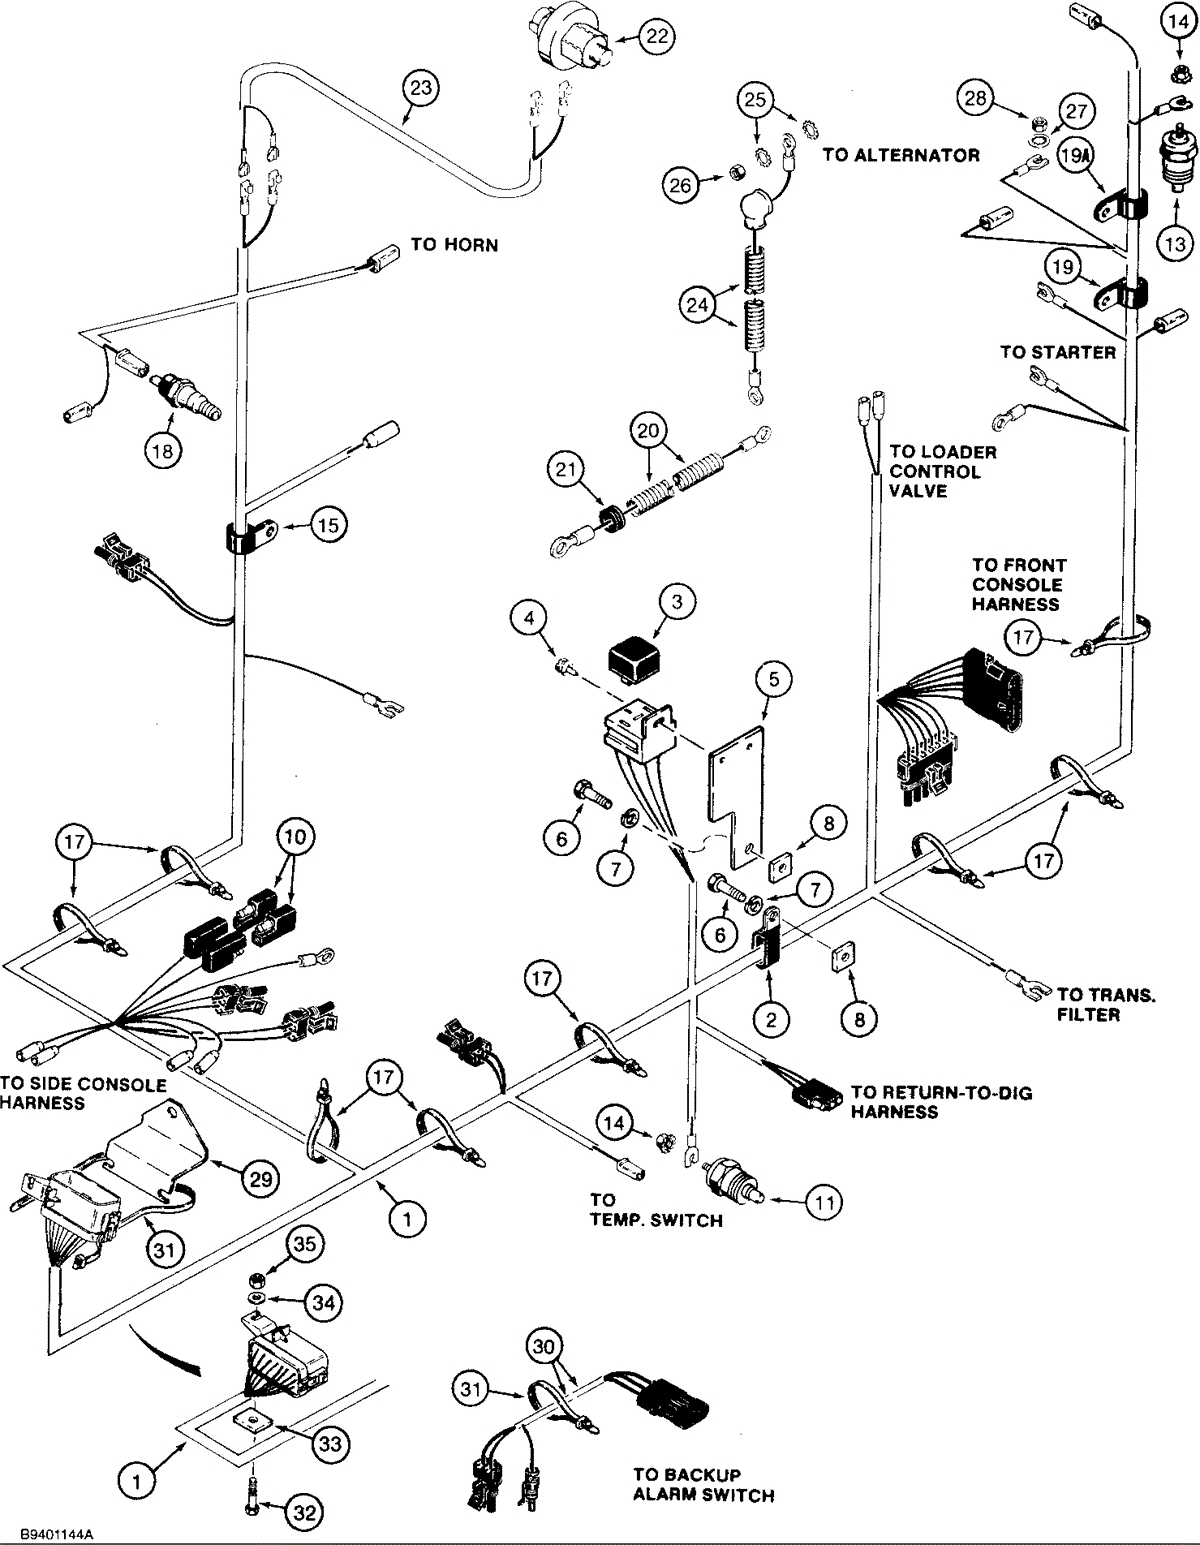 E Wiring Diagram on super backhoe bucket, case backhoe serial number 17553514, case shuttle parts, grapple for case, tire chains for case, case sewer line,